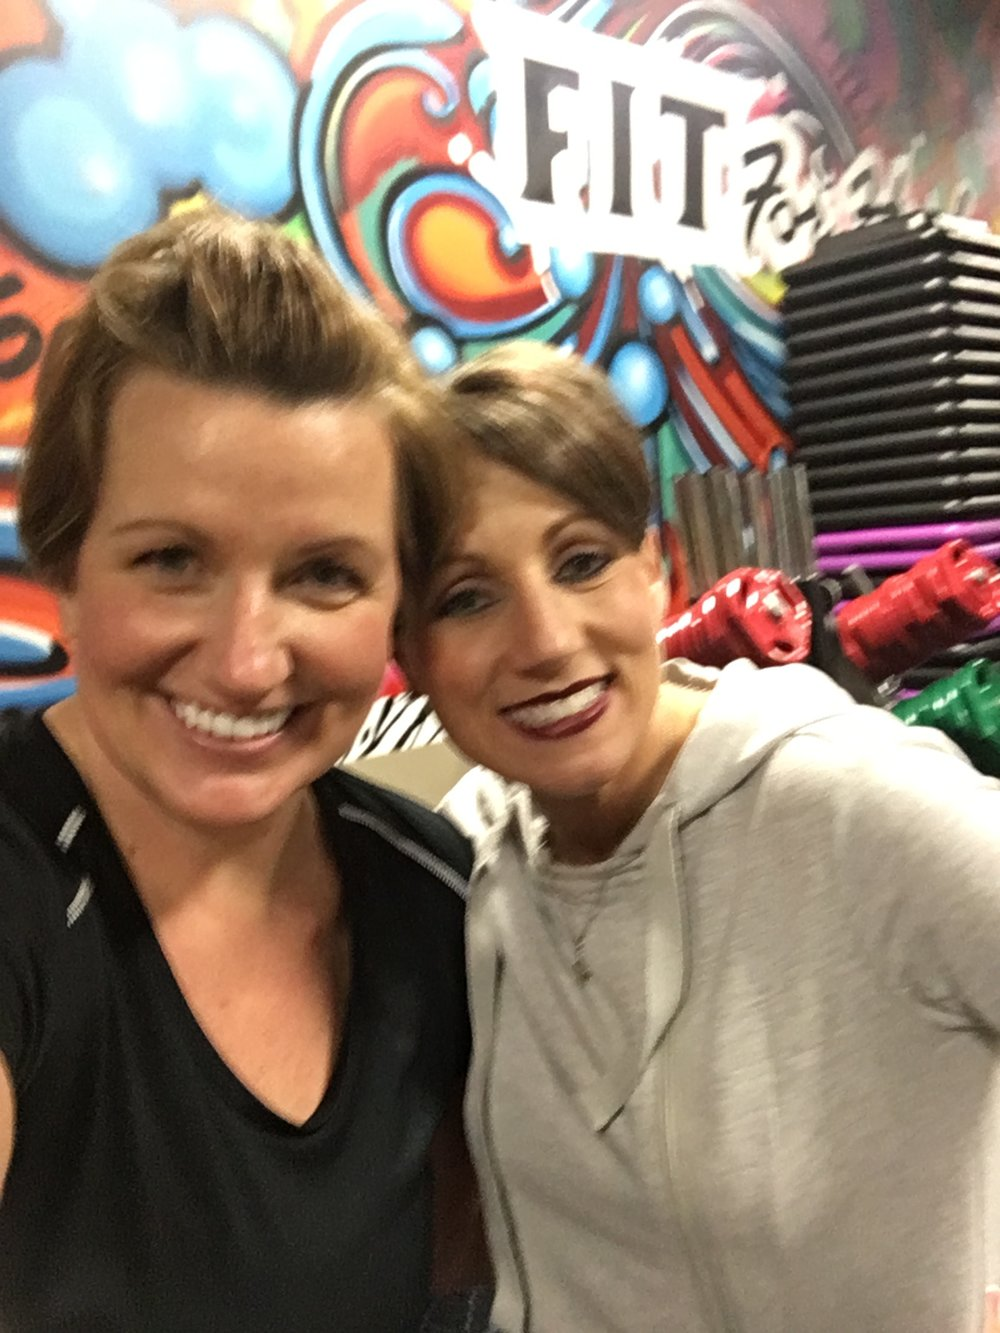 After- It's blurry because my arms were shaking.  And please notice how flawless Adana, our teacher, is even after the workout!  #goals